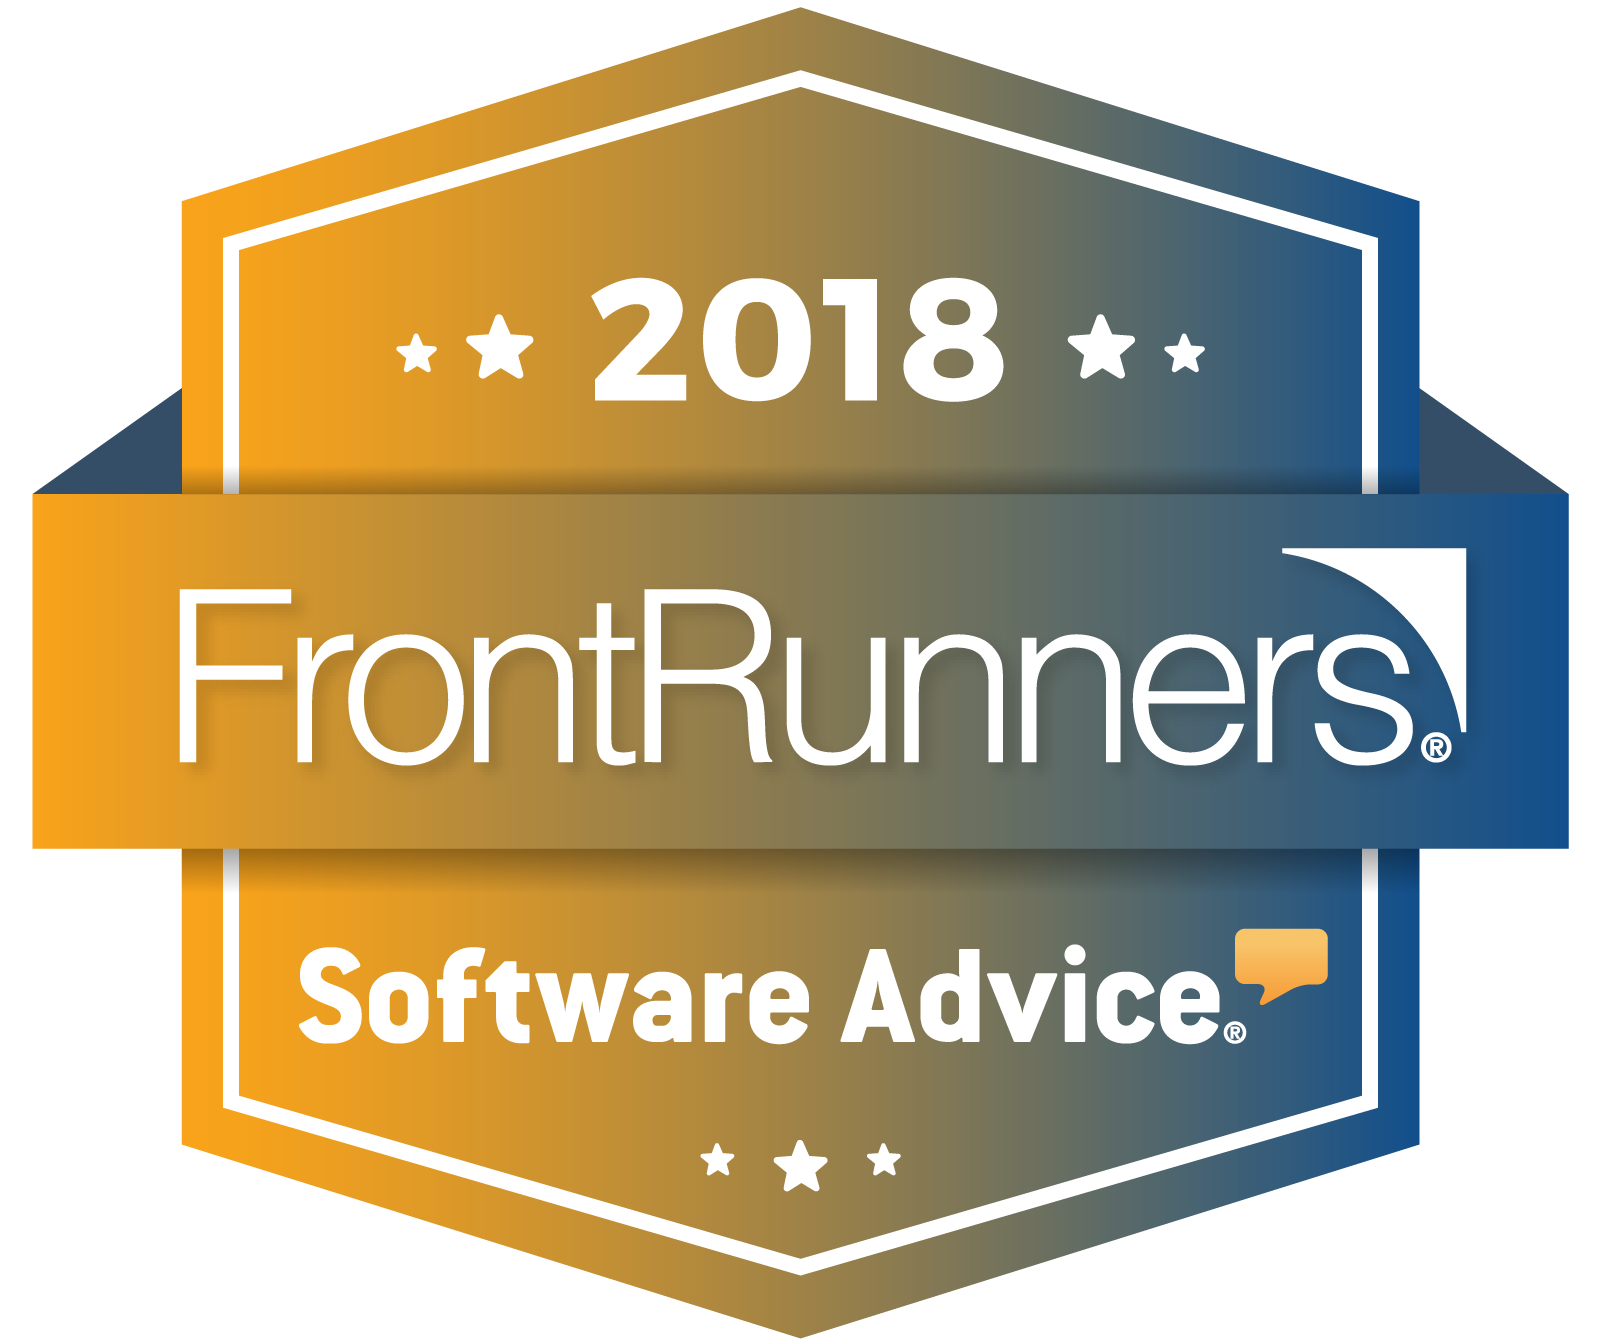 Voiptime Cloud named a FrontRunner for CRM Software